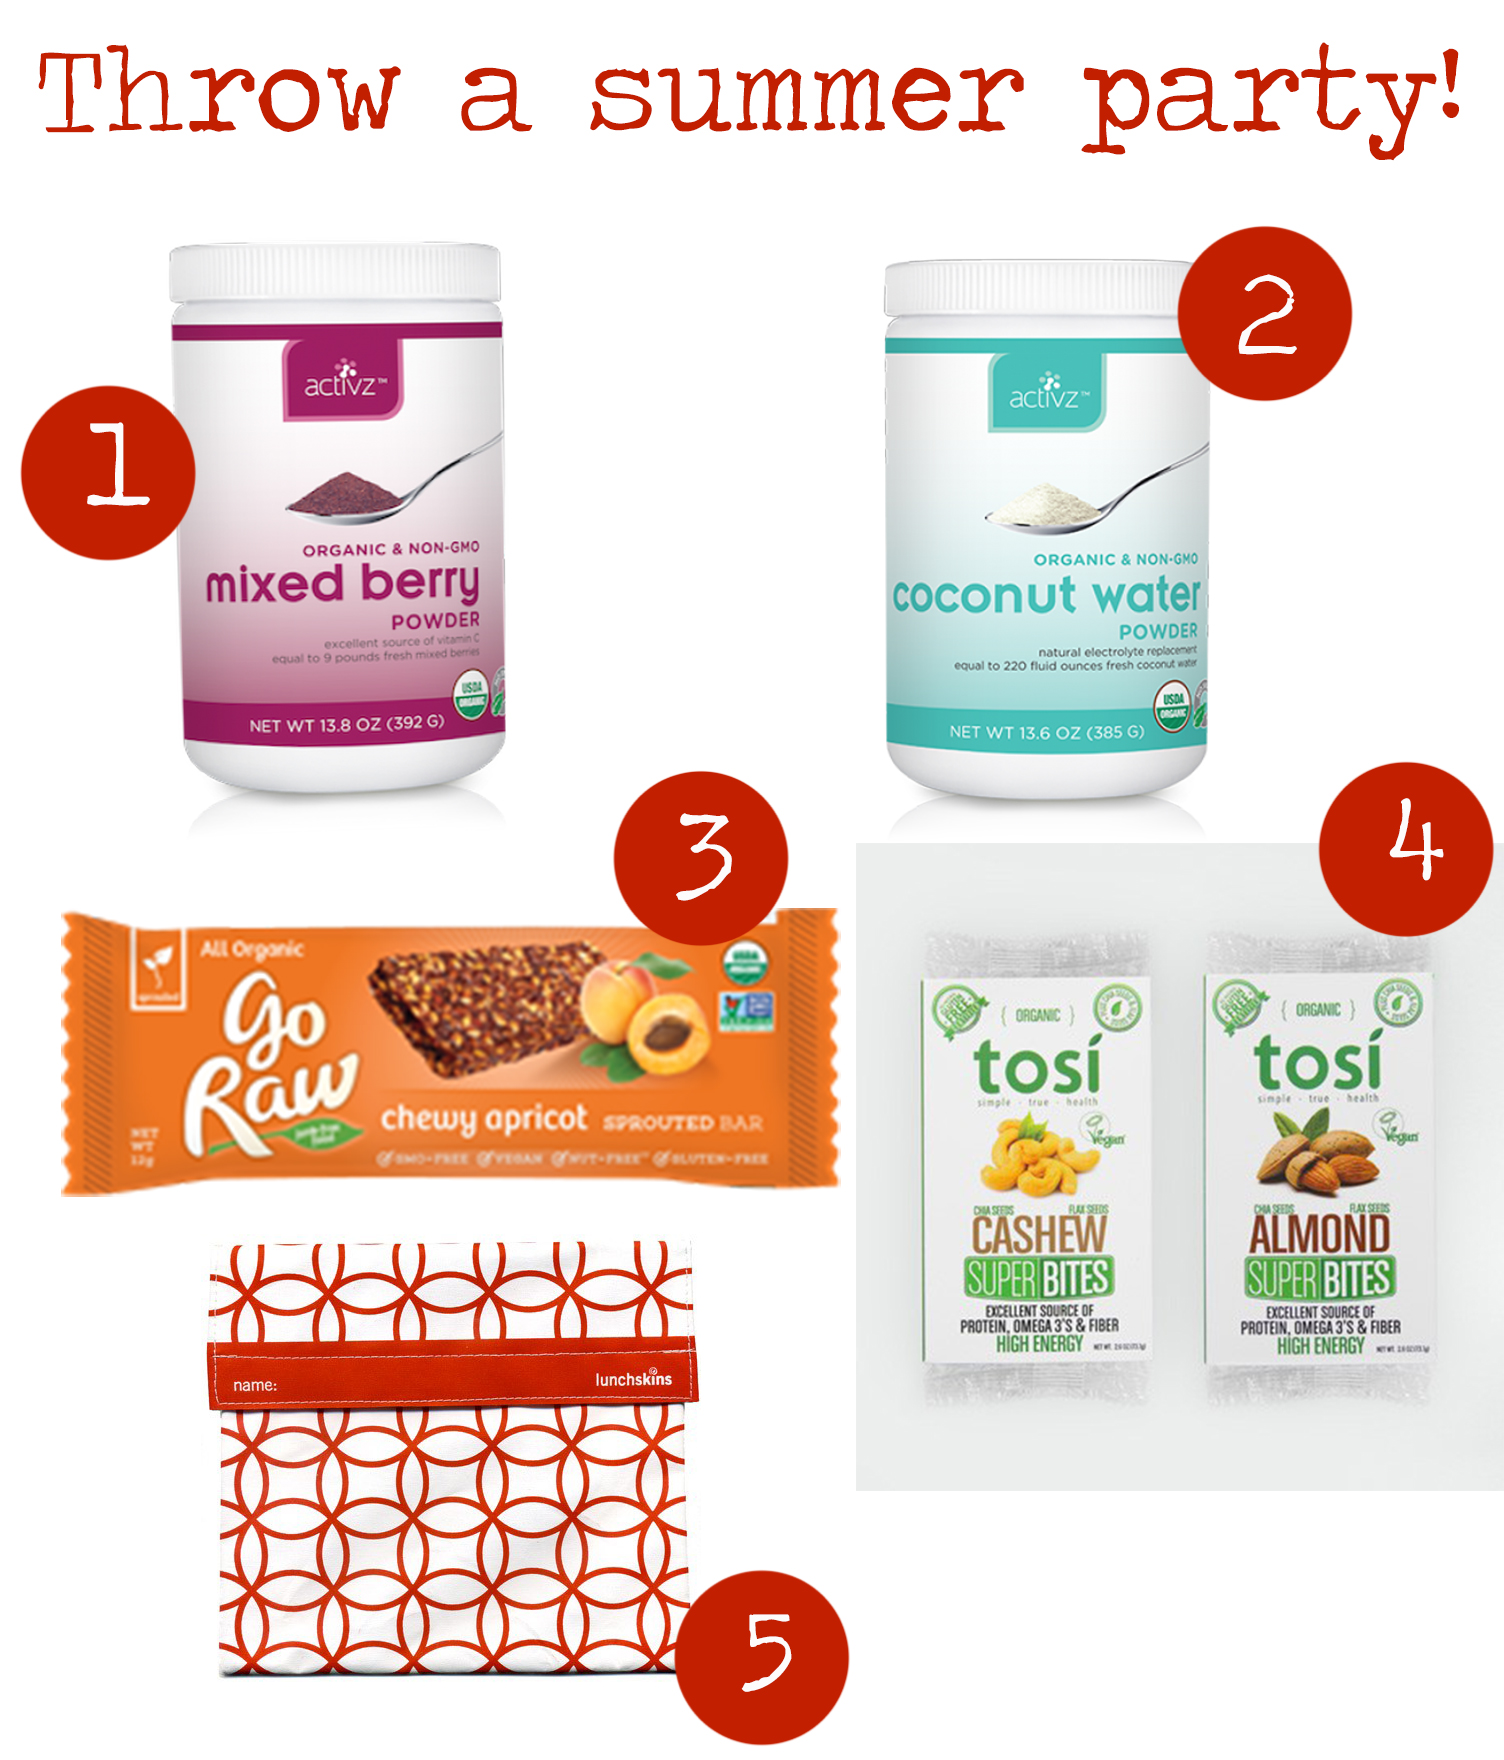 Pin now and enter our healthy living giveaway!